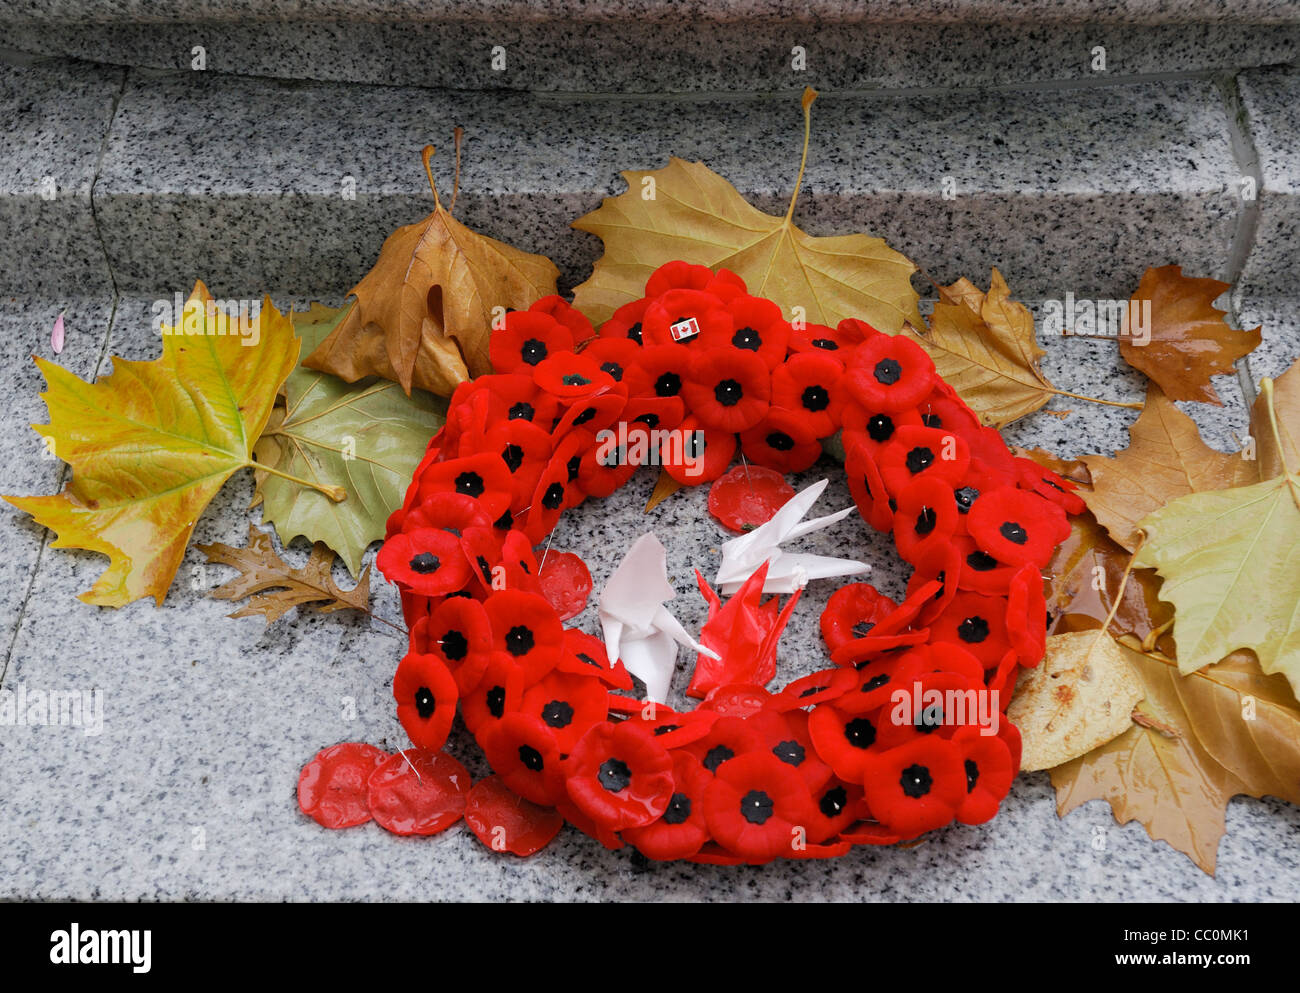 A remembrance day wreath of poppies. - Stock Image